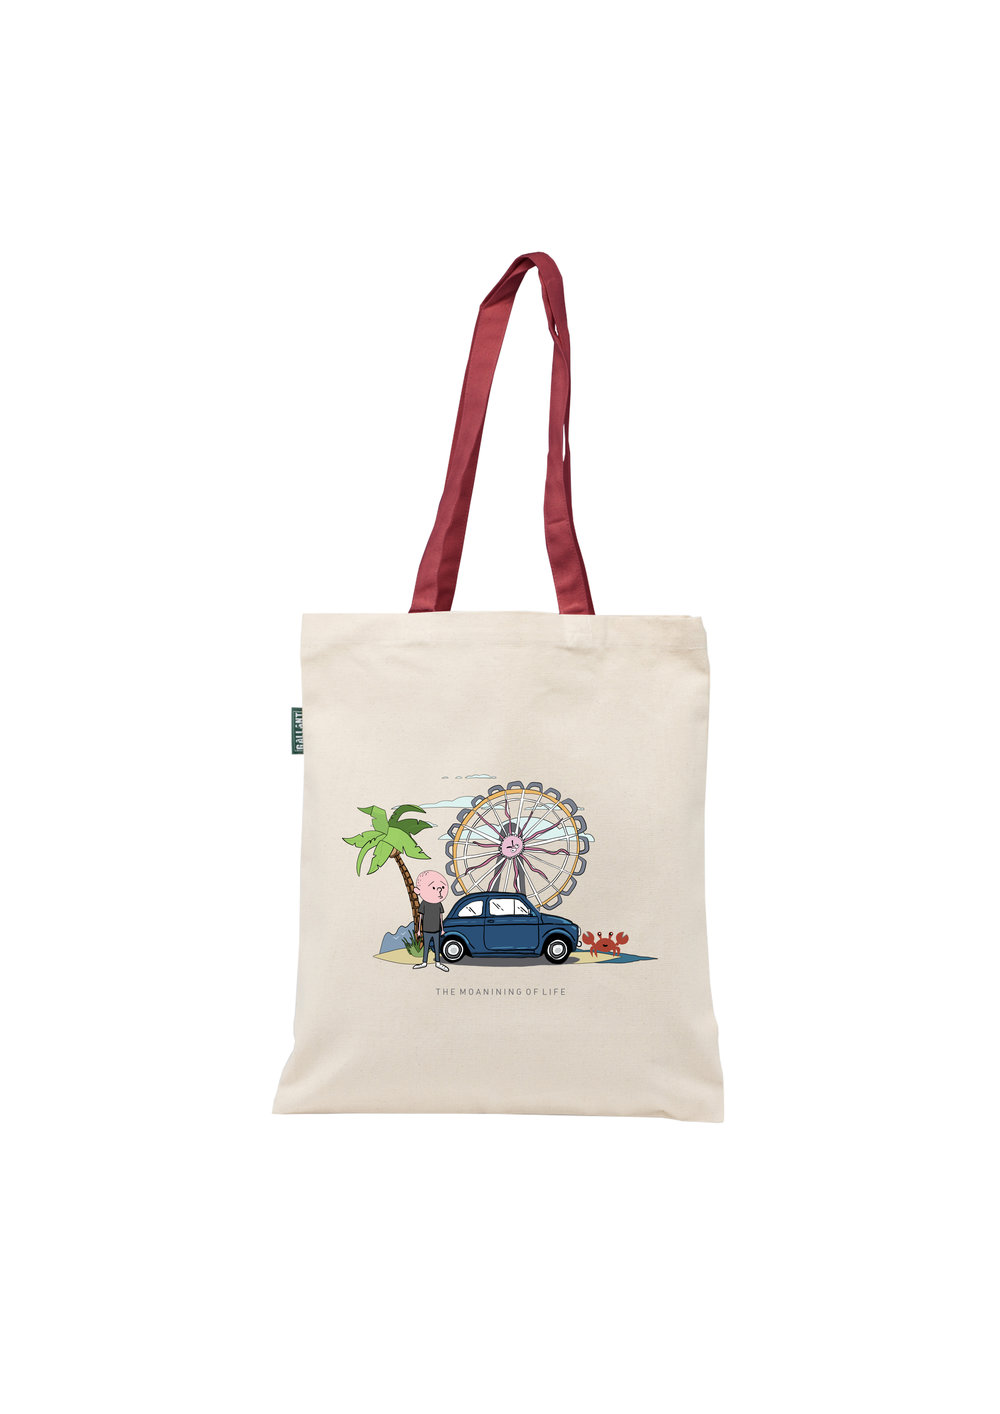 All of our bags are customizable to shape, size and color to meet your needs!